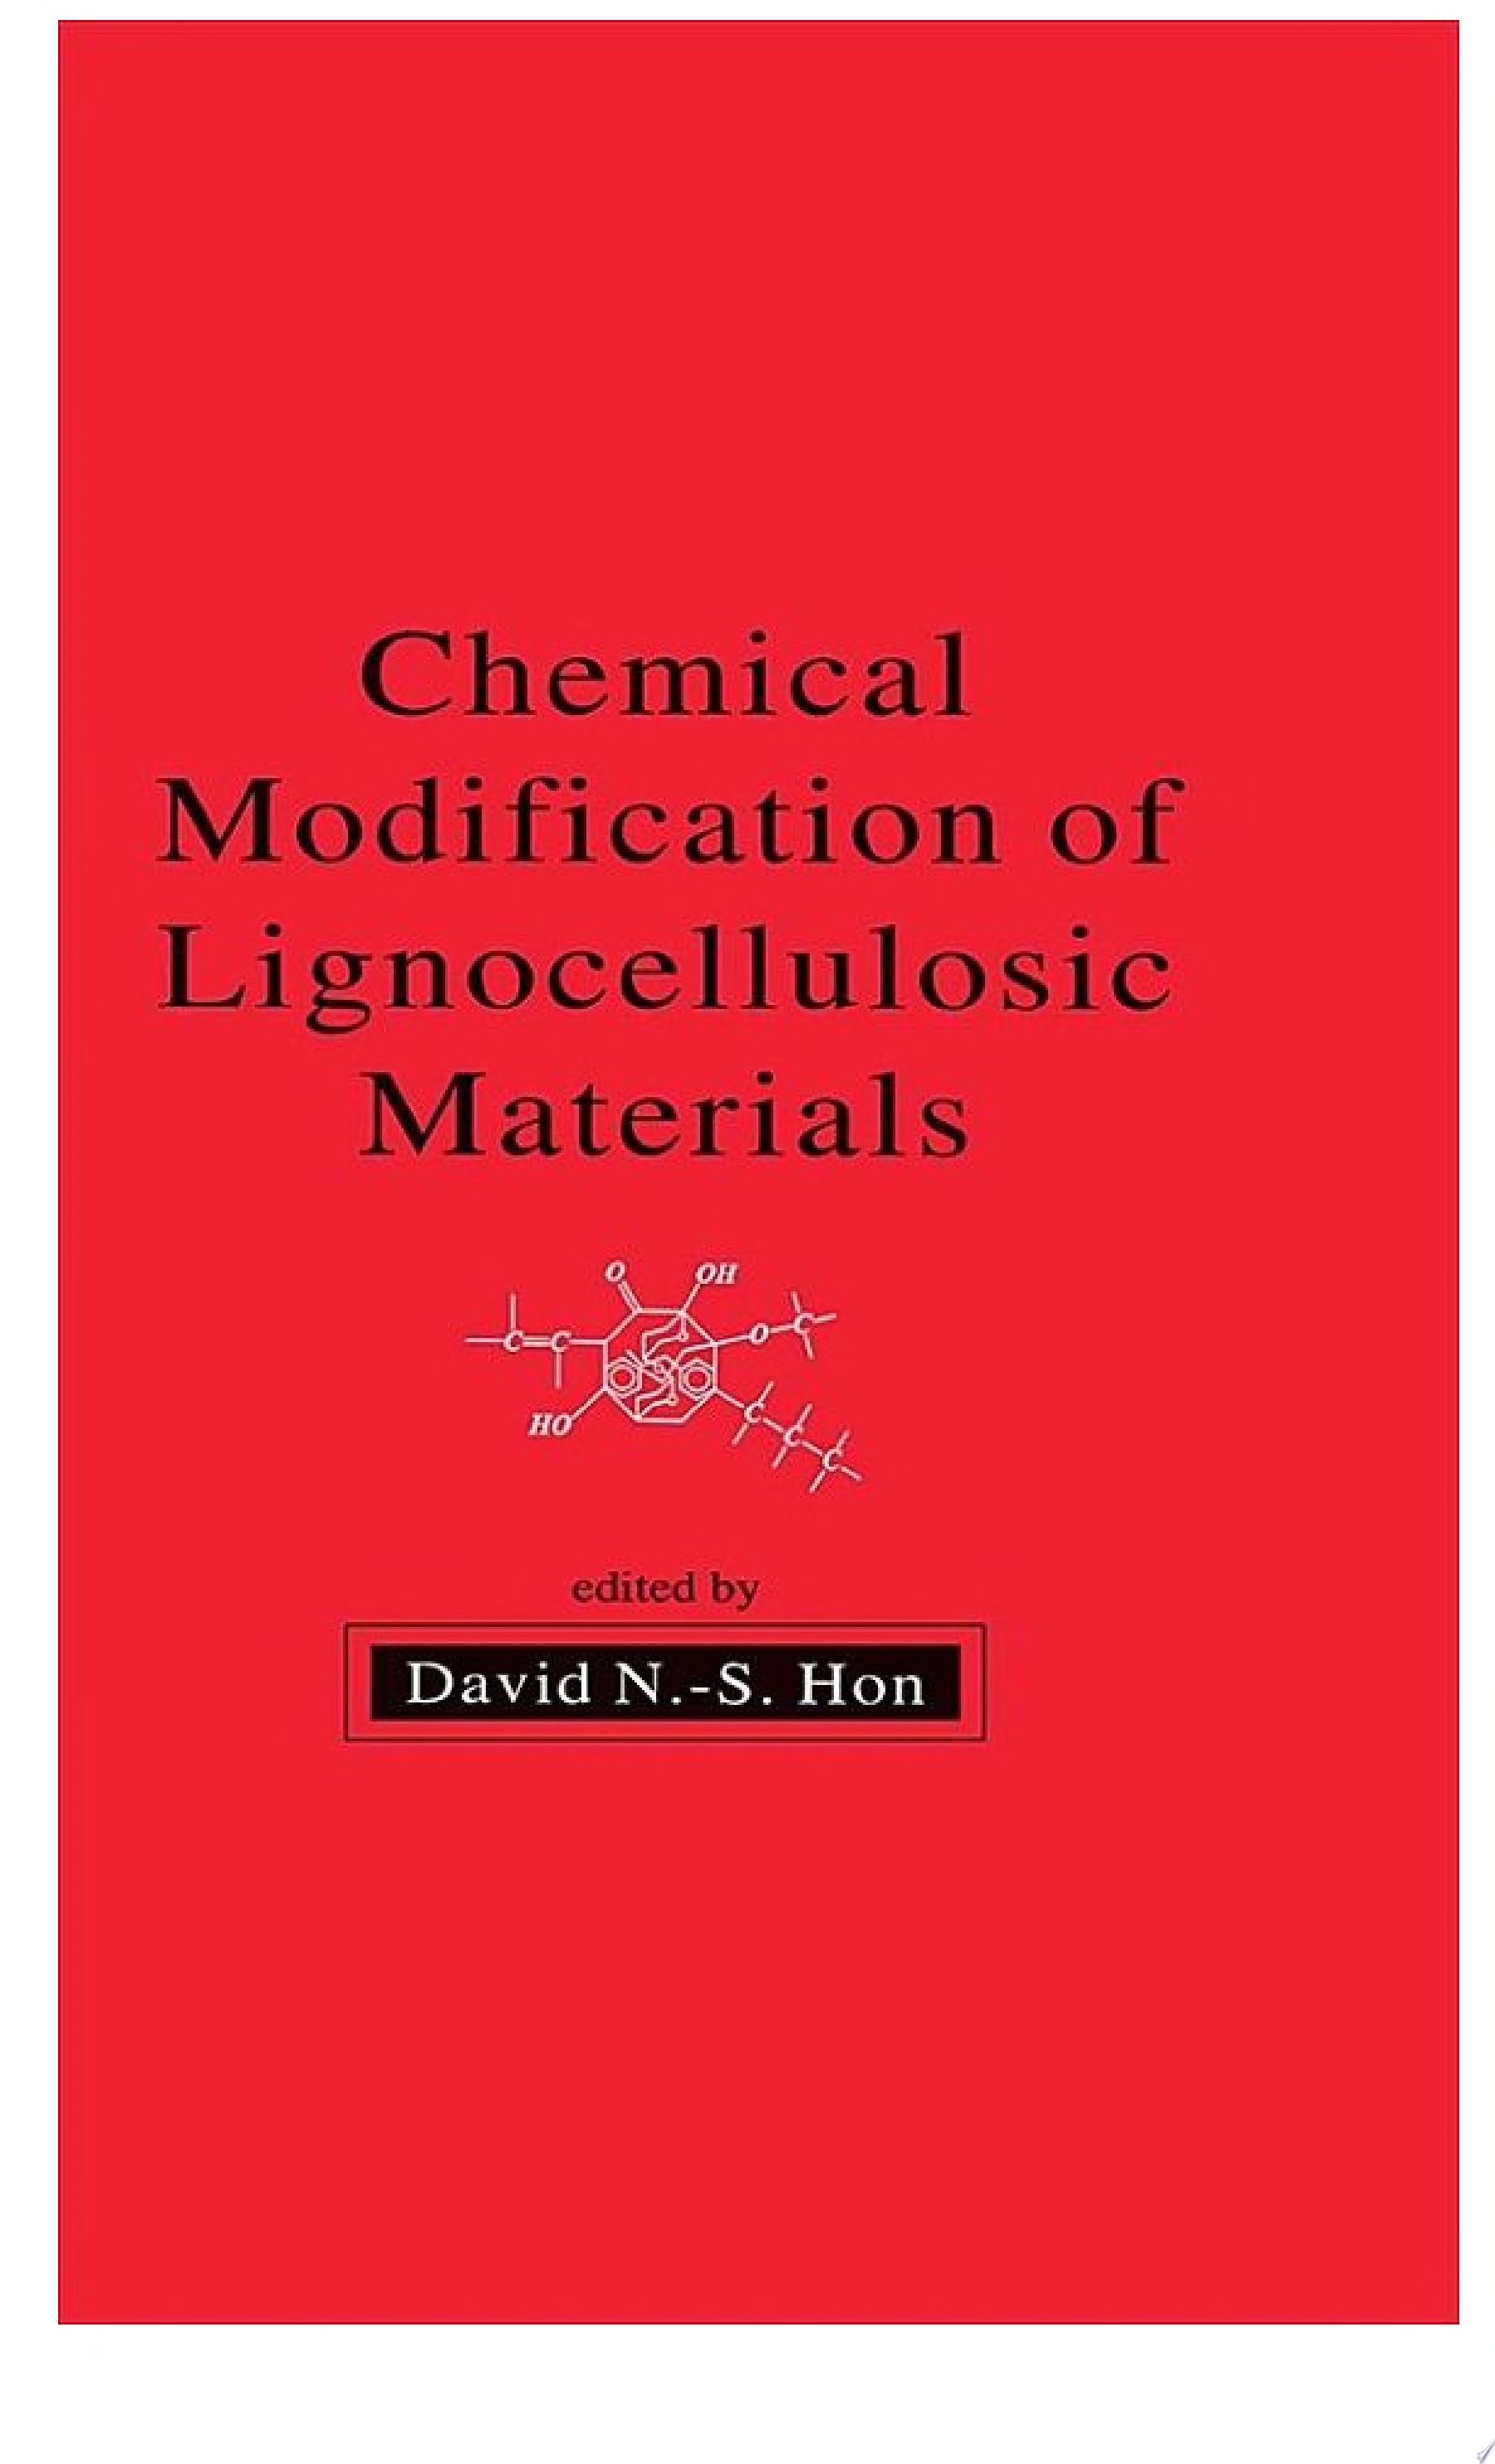 Chemical Modification of Lignocellulosic Materials